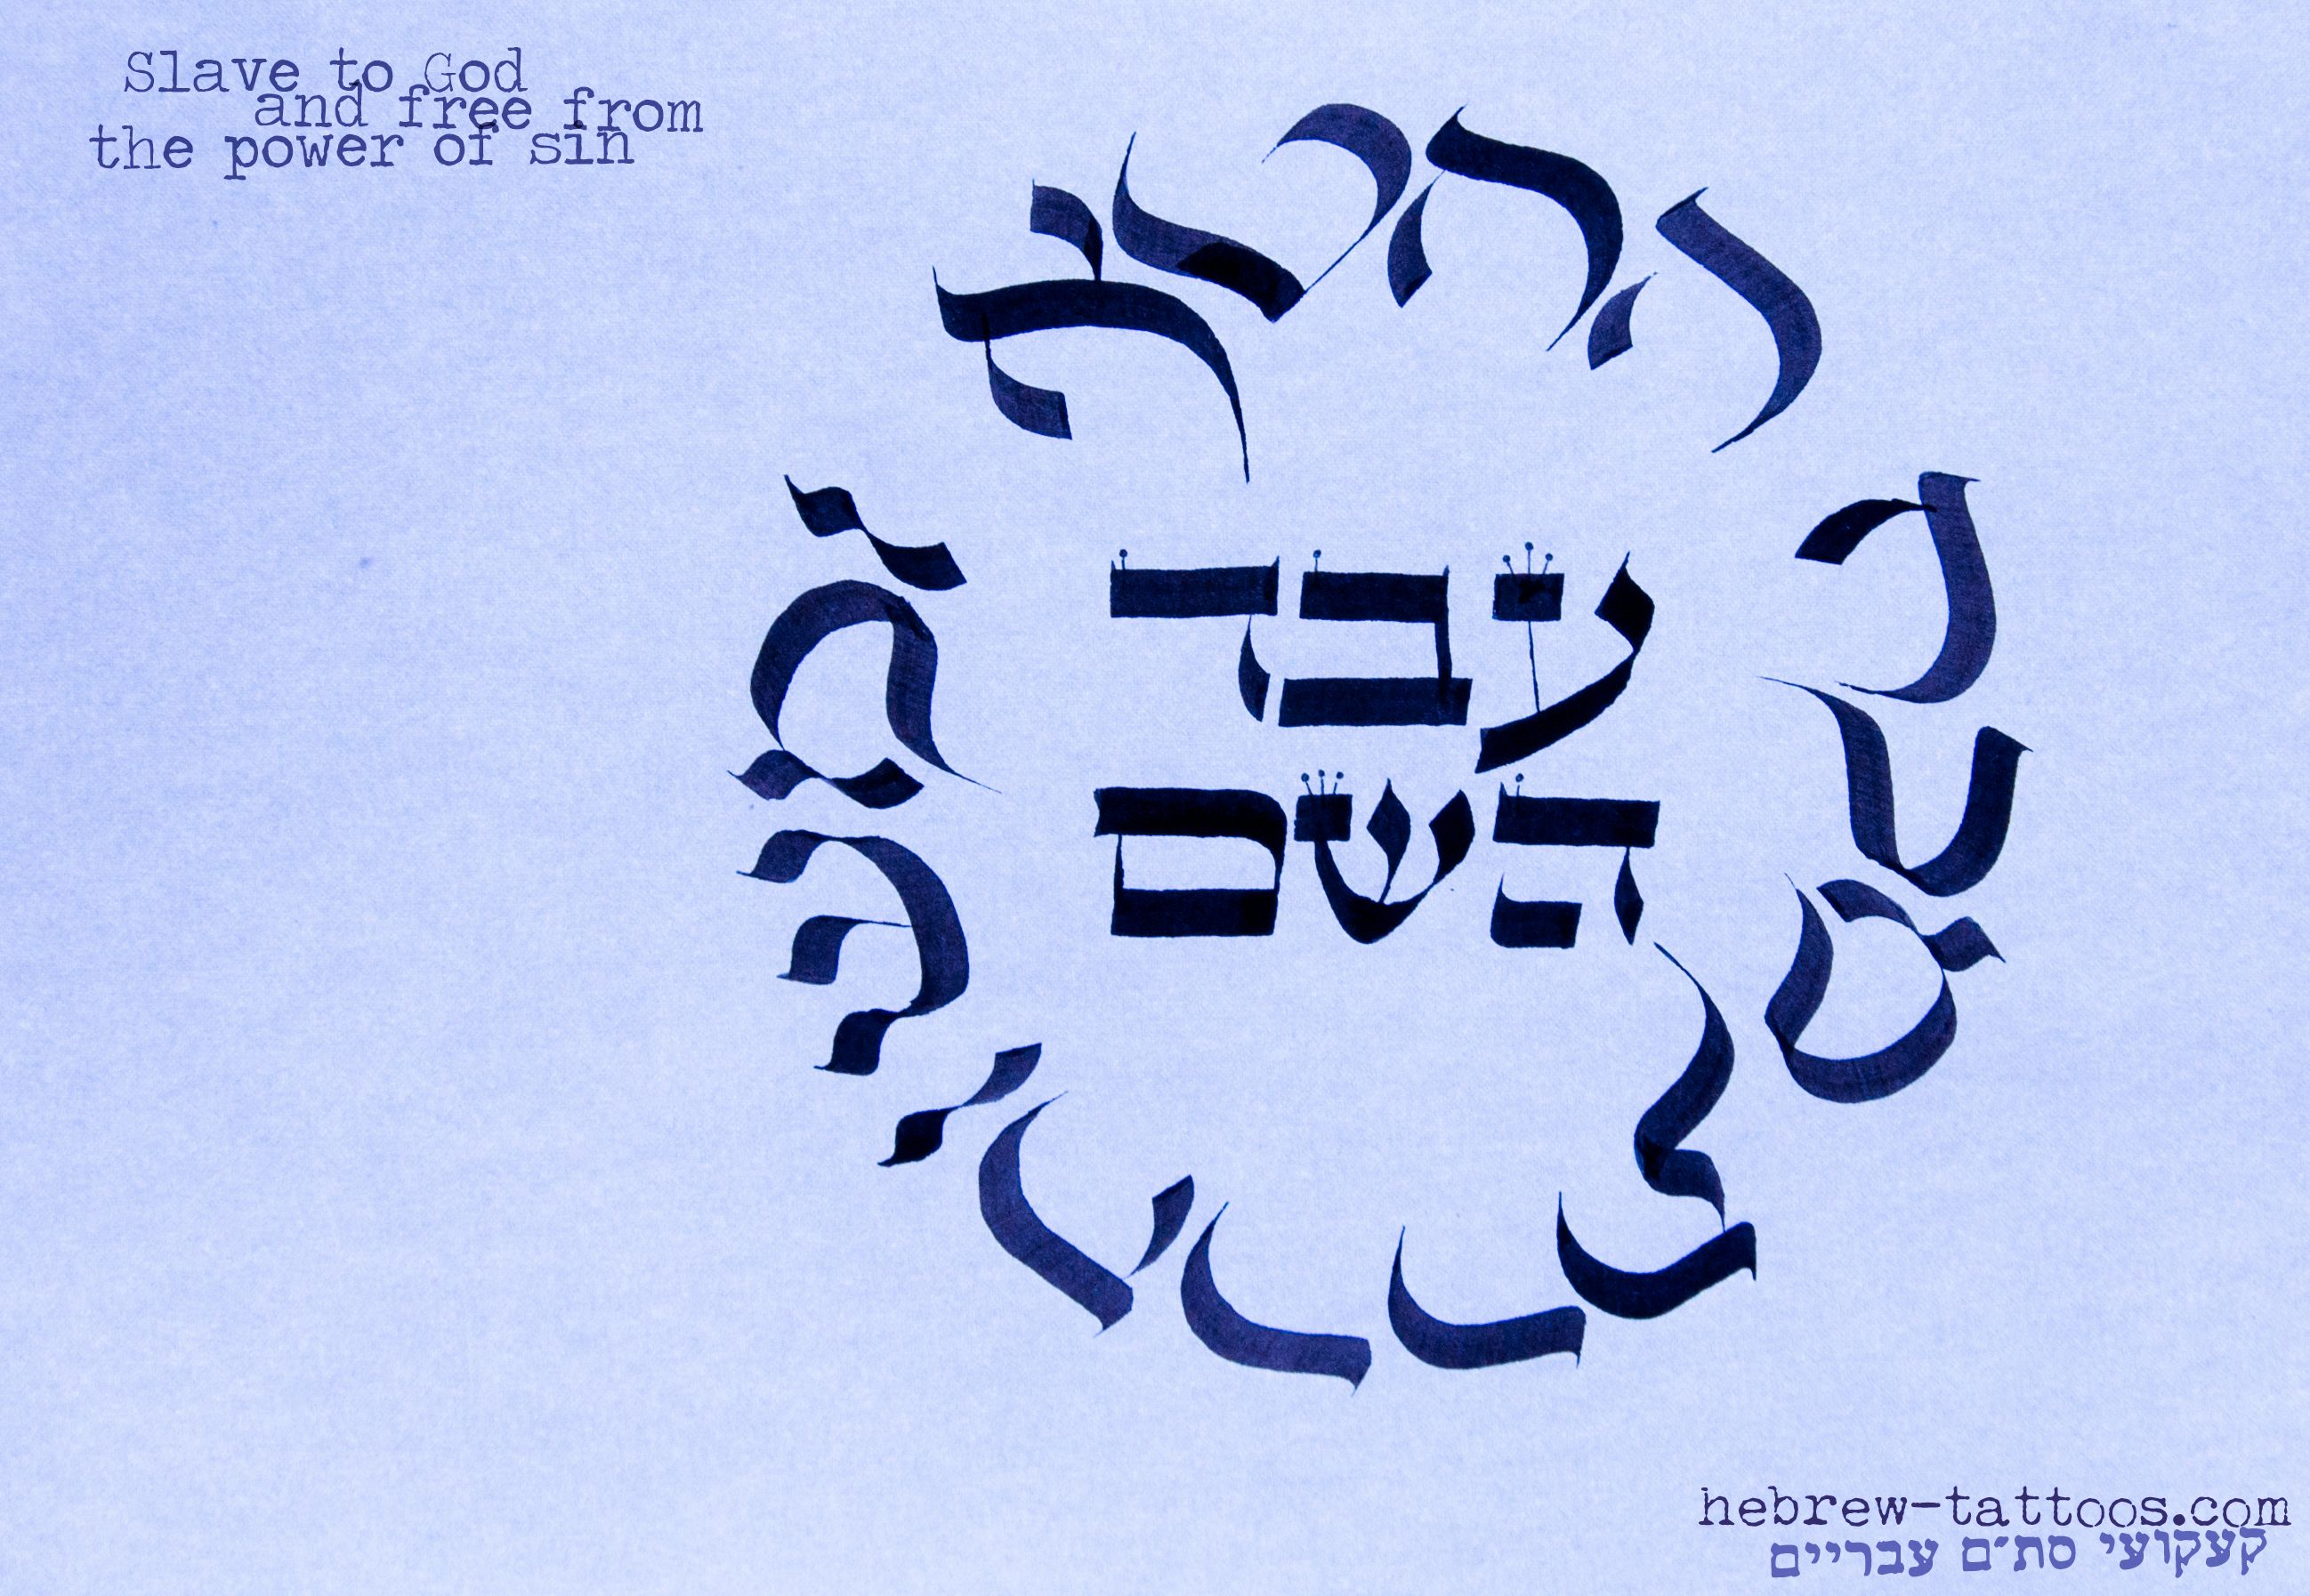 Slave To God Free From The Power Of Sin By Hebrew Tattoos